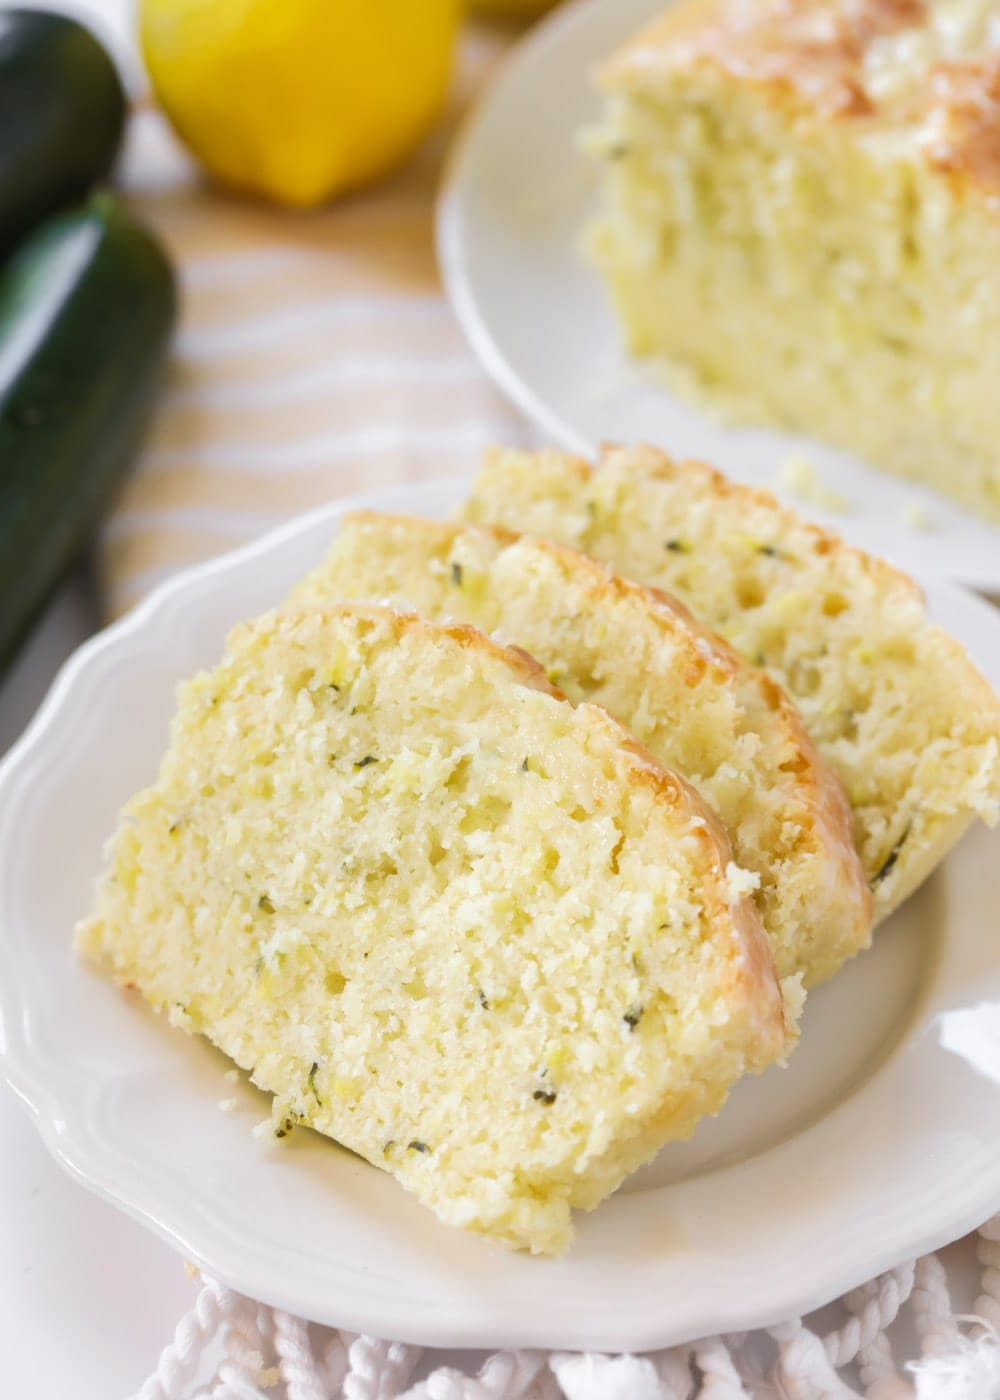 Lemon zucchini bread recipe on plate